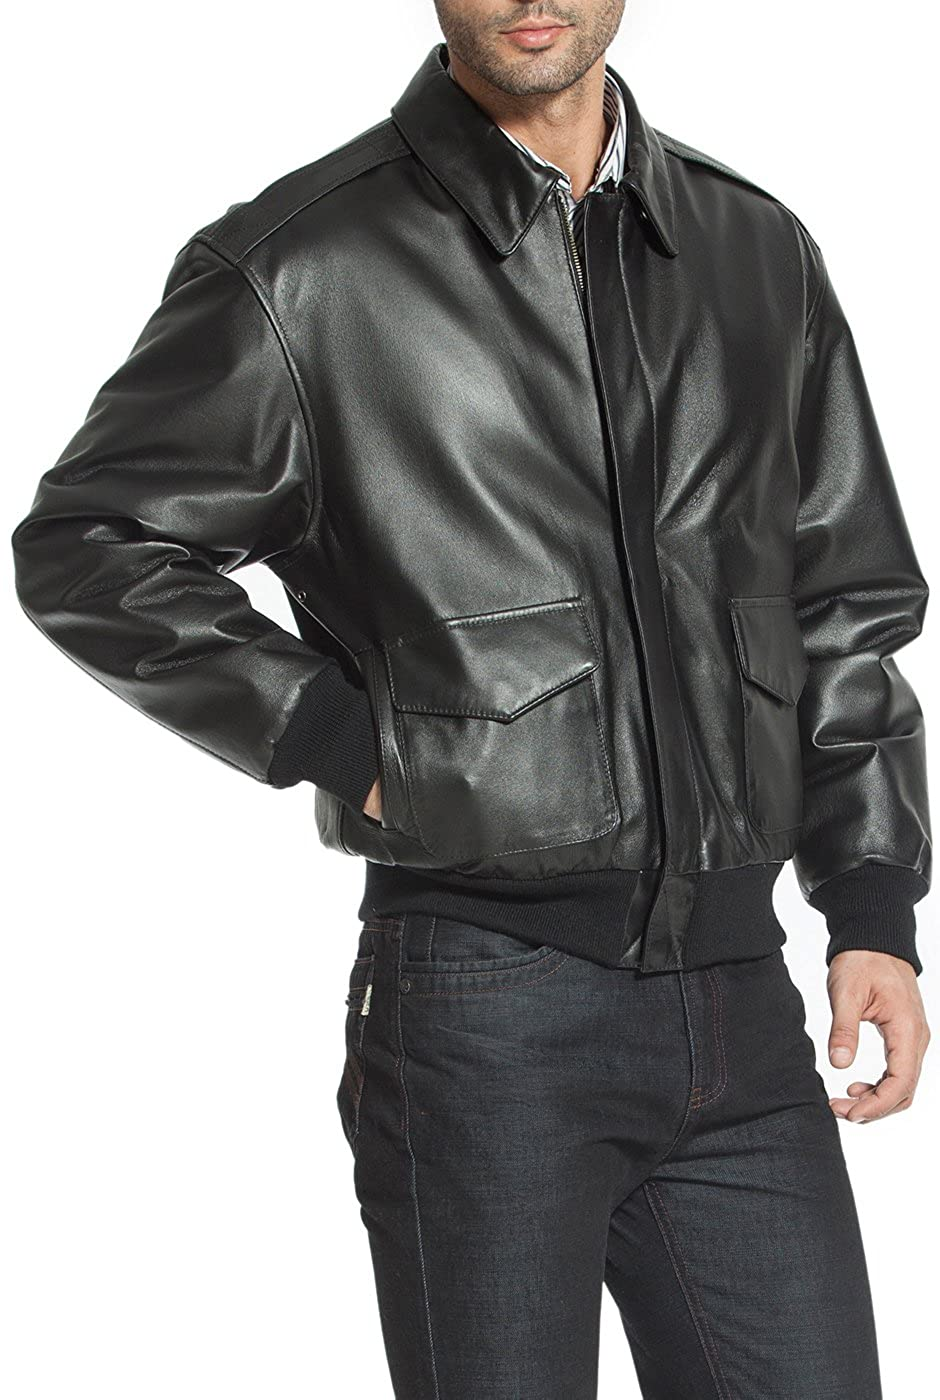 6acb8a7ece0 Landing Leathers Men's Air Force A-2 Leather Flight Bomber Jacket (Regular  Big & Tall) at Amazon Men's Clothing store: